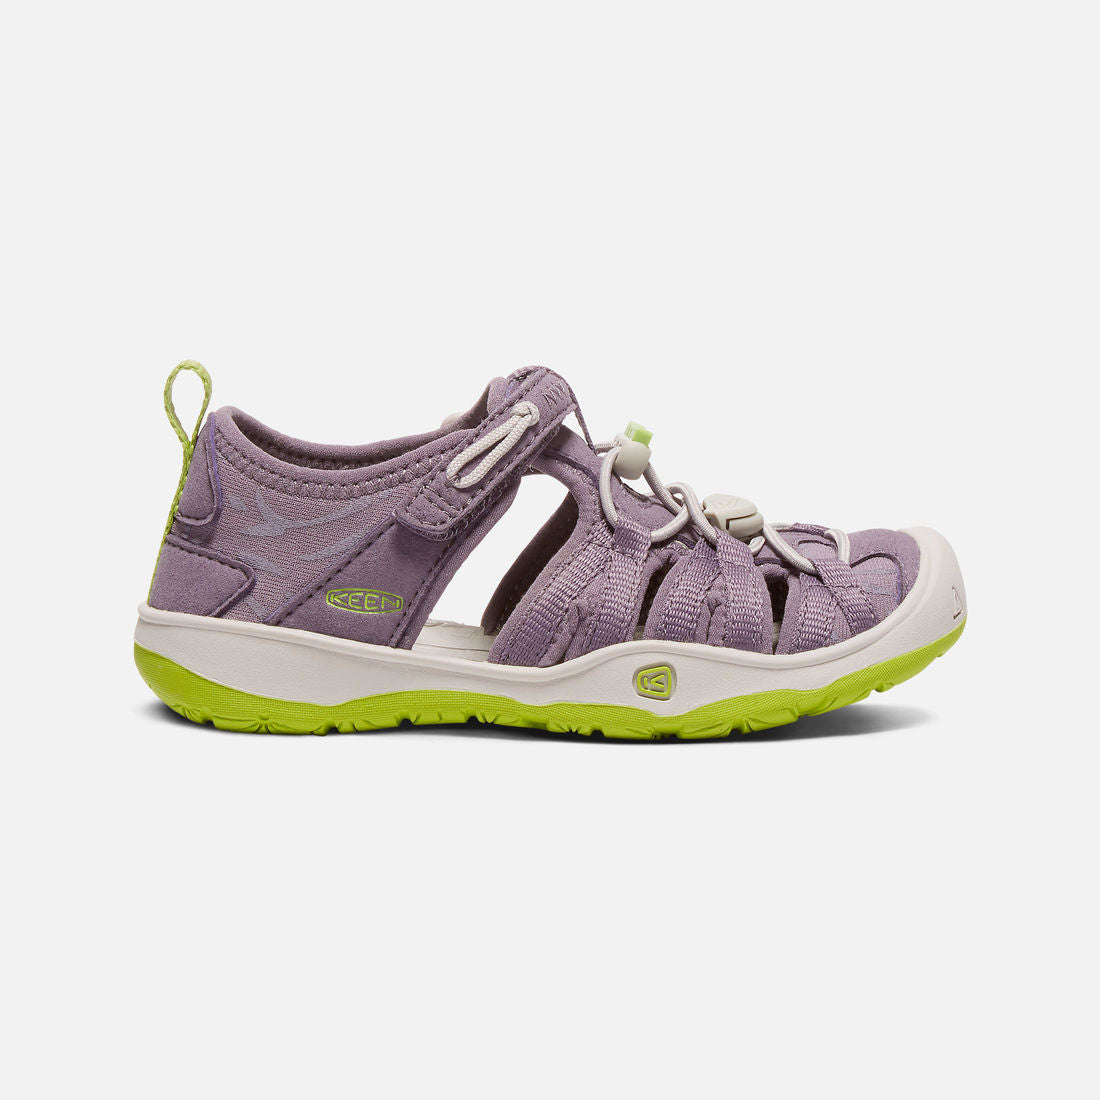 db278fc7c2be Keen Moxie Sandal (Big Kid   Little Kid) - Purple Sage   Greenery ...